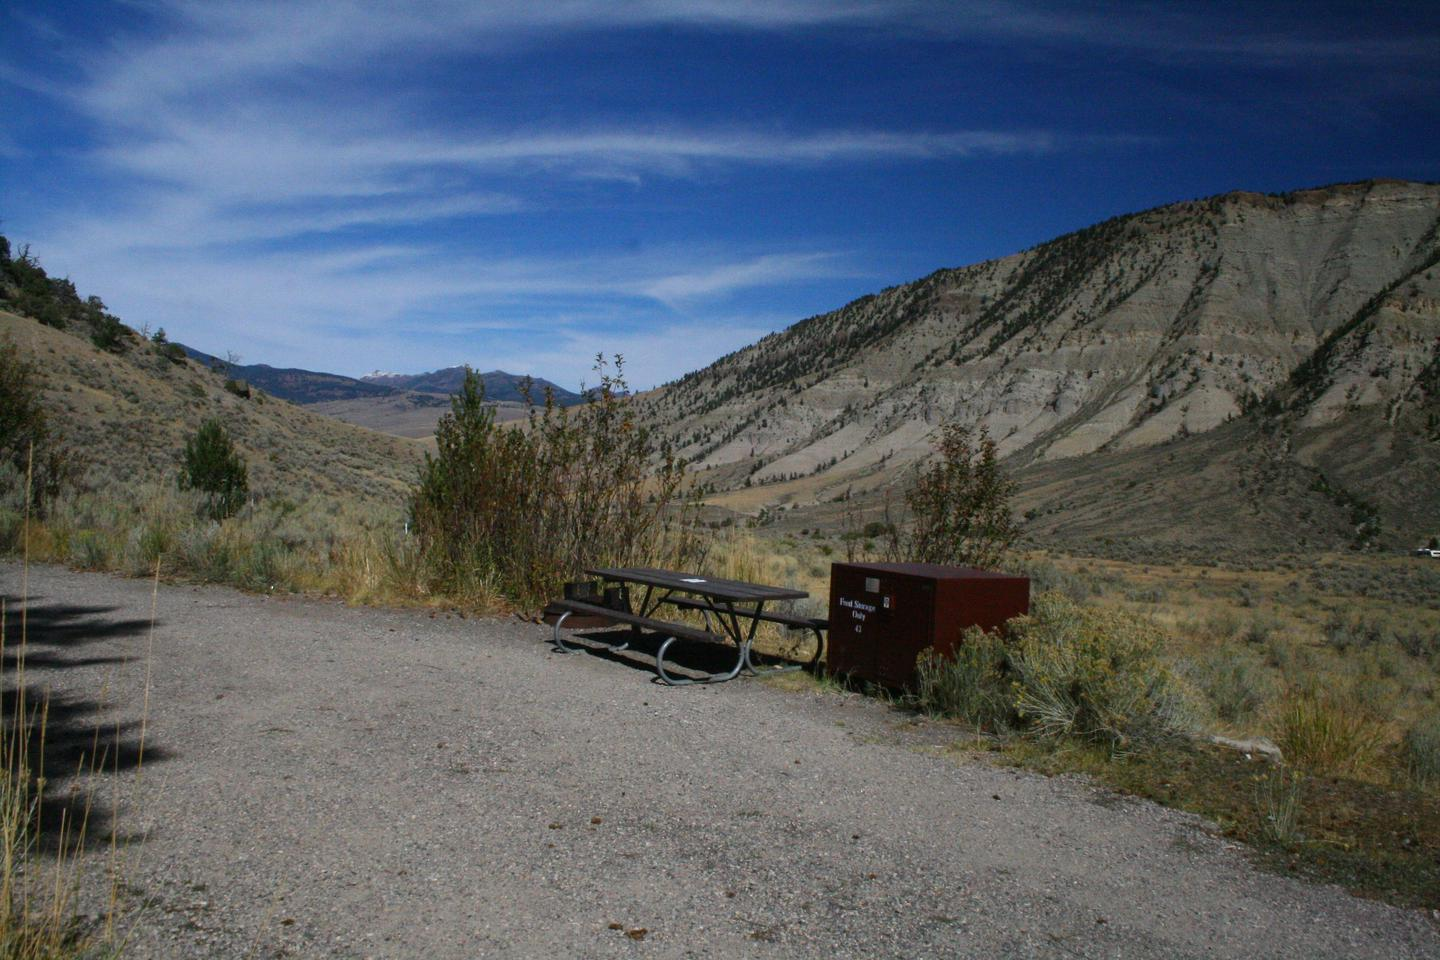 Mammoth Hot Springs Campground Site 43Mammoth Campsite #43, looking north